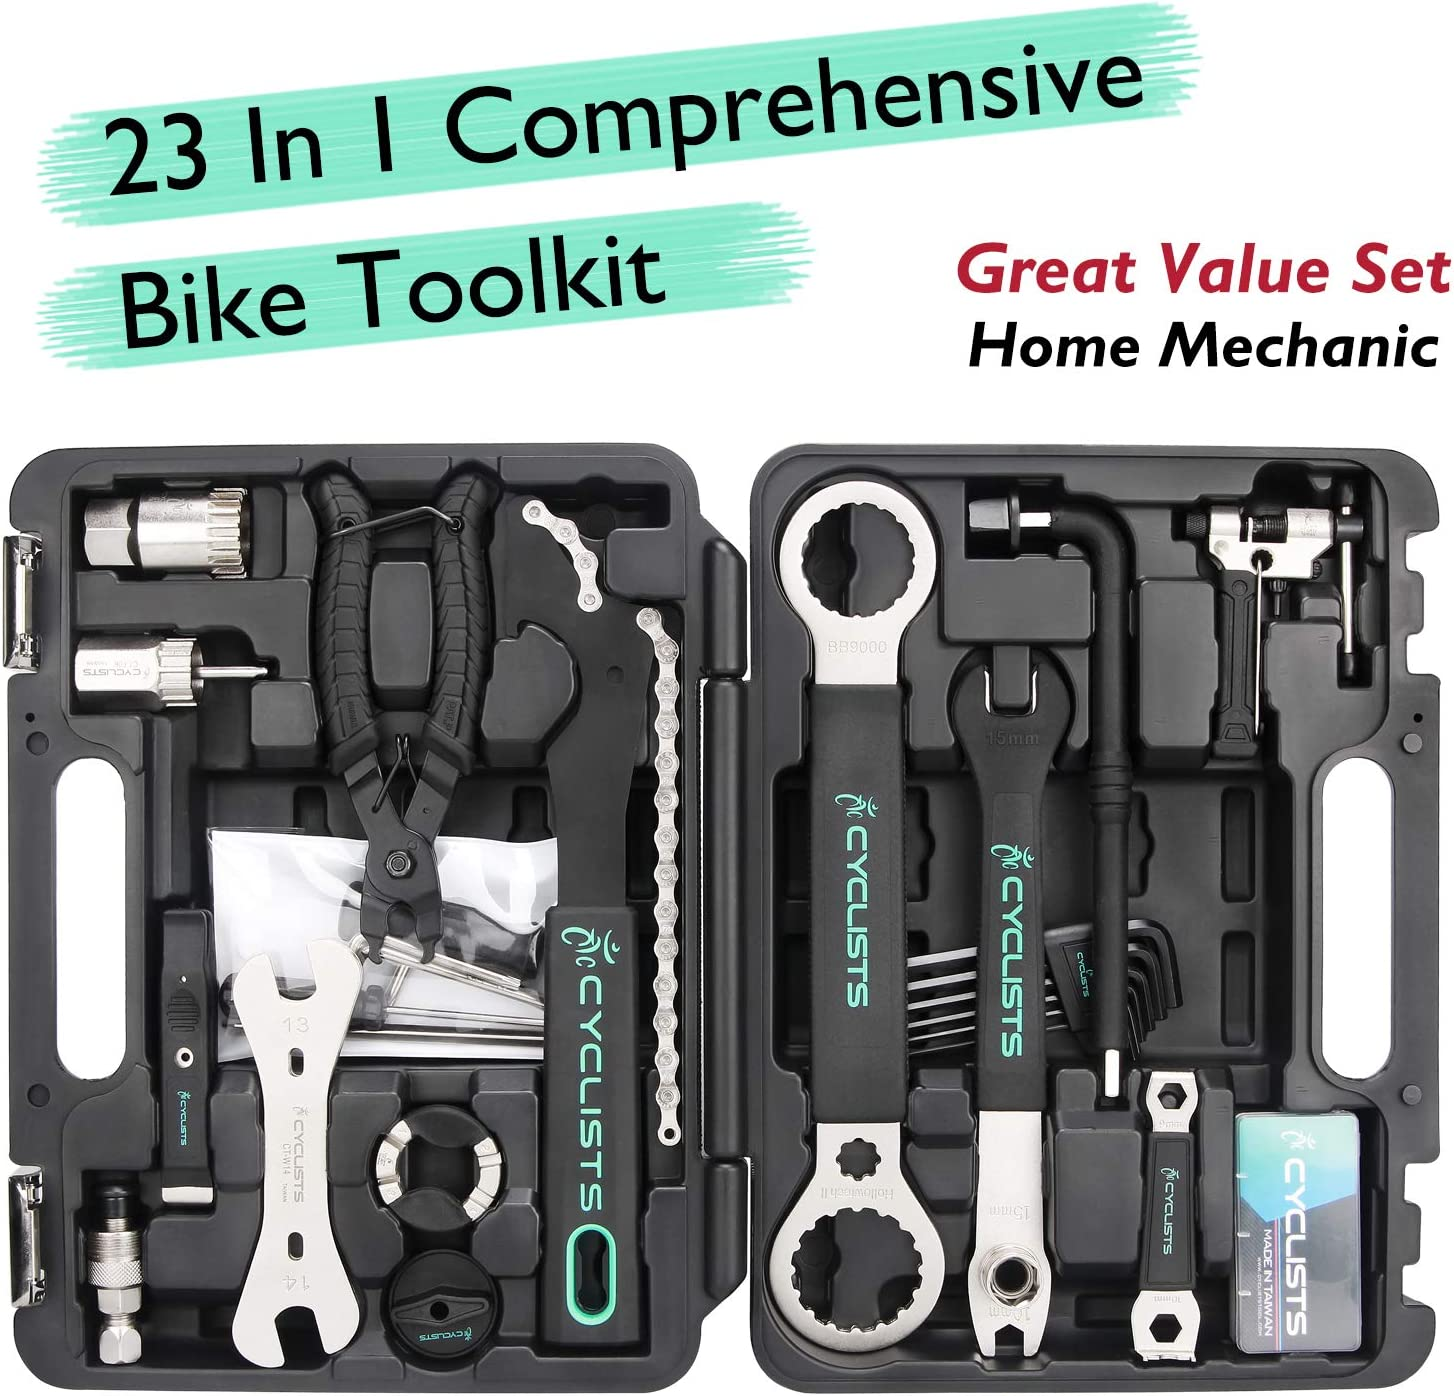 ColouredPeas Bike Repair Tool Kit Maintenance Set 26//44 Pieces with Tool Box Best Choice Professional Tool Kit for Repair Chain Bike Tire Pedal Wrench Brakes Lights Mountain Road Bike Bicycle